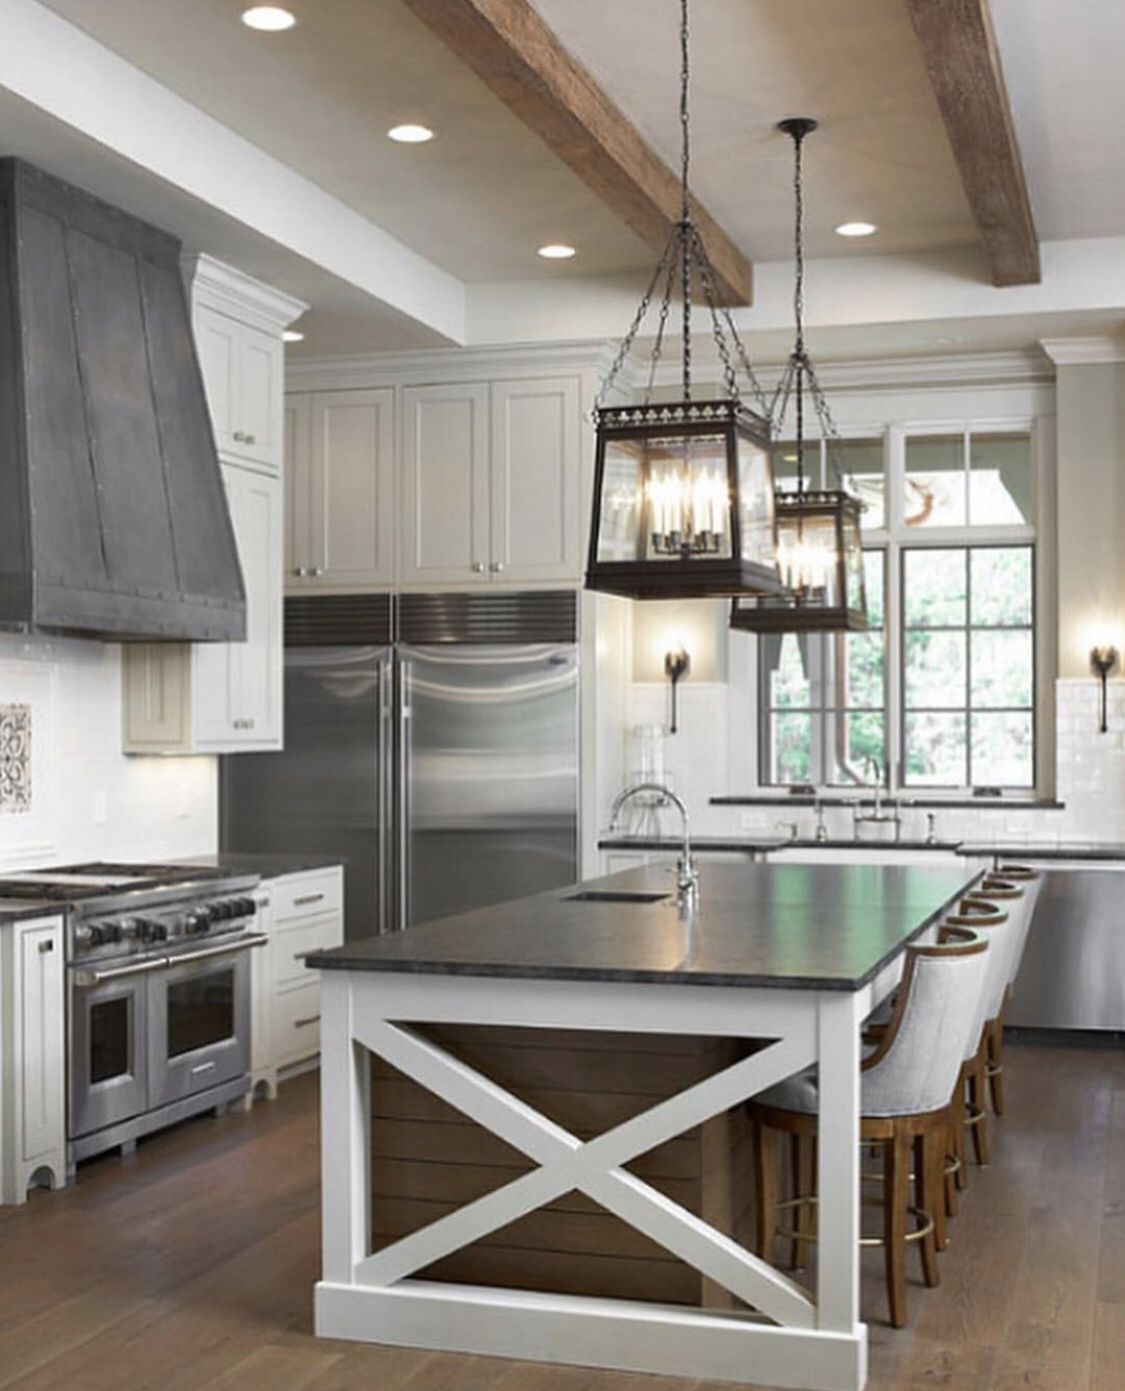 Transitional kitchen design by Diane Ryan on Retirement ...